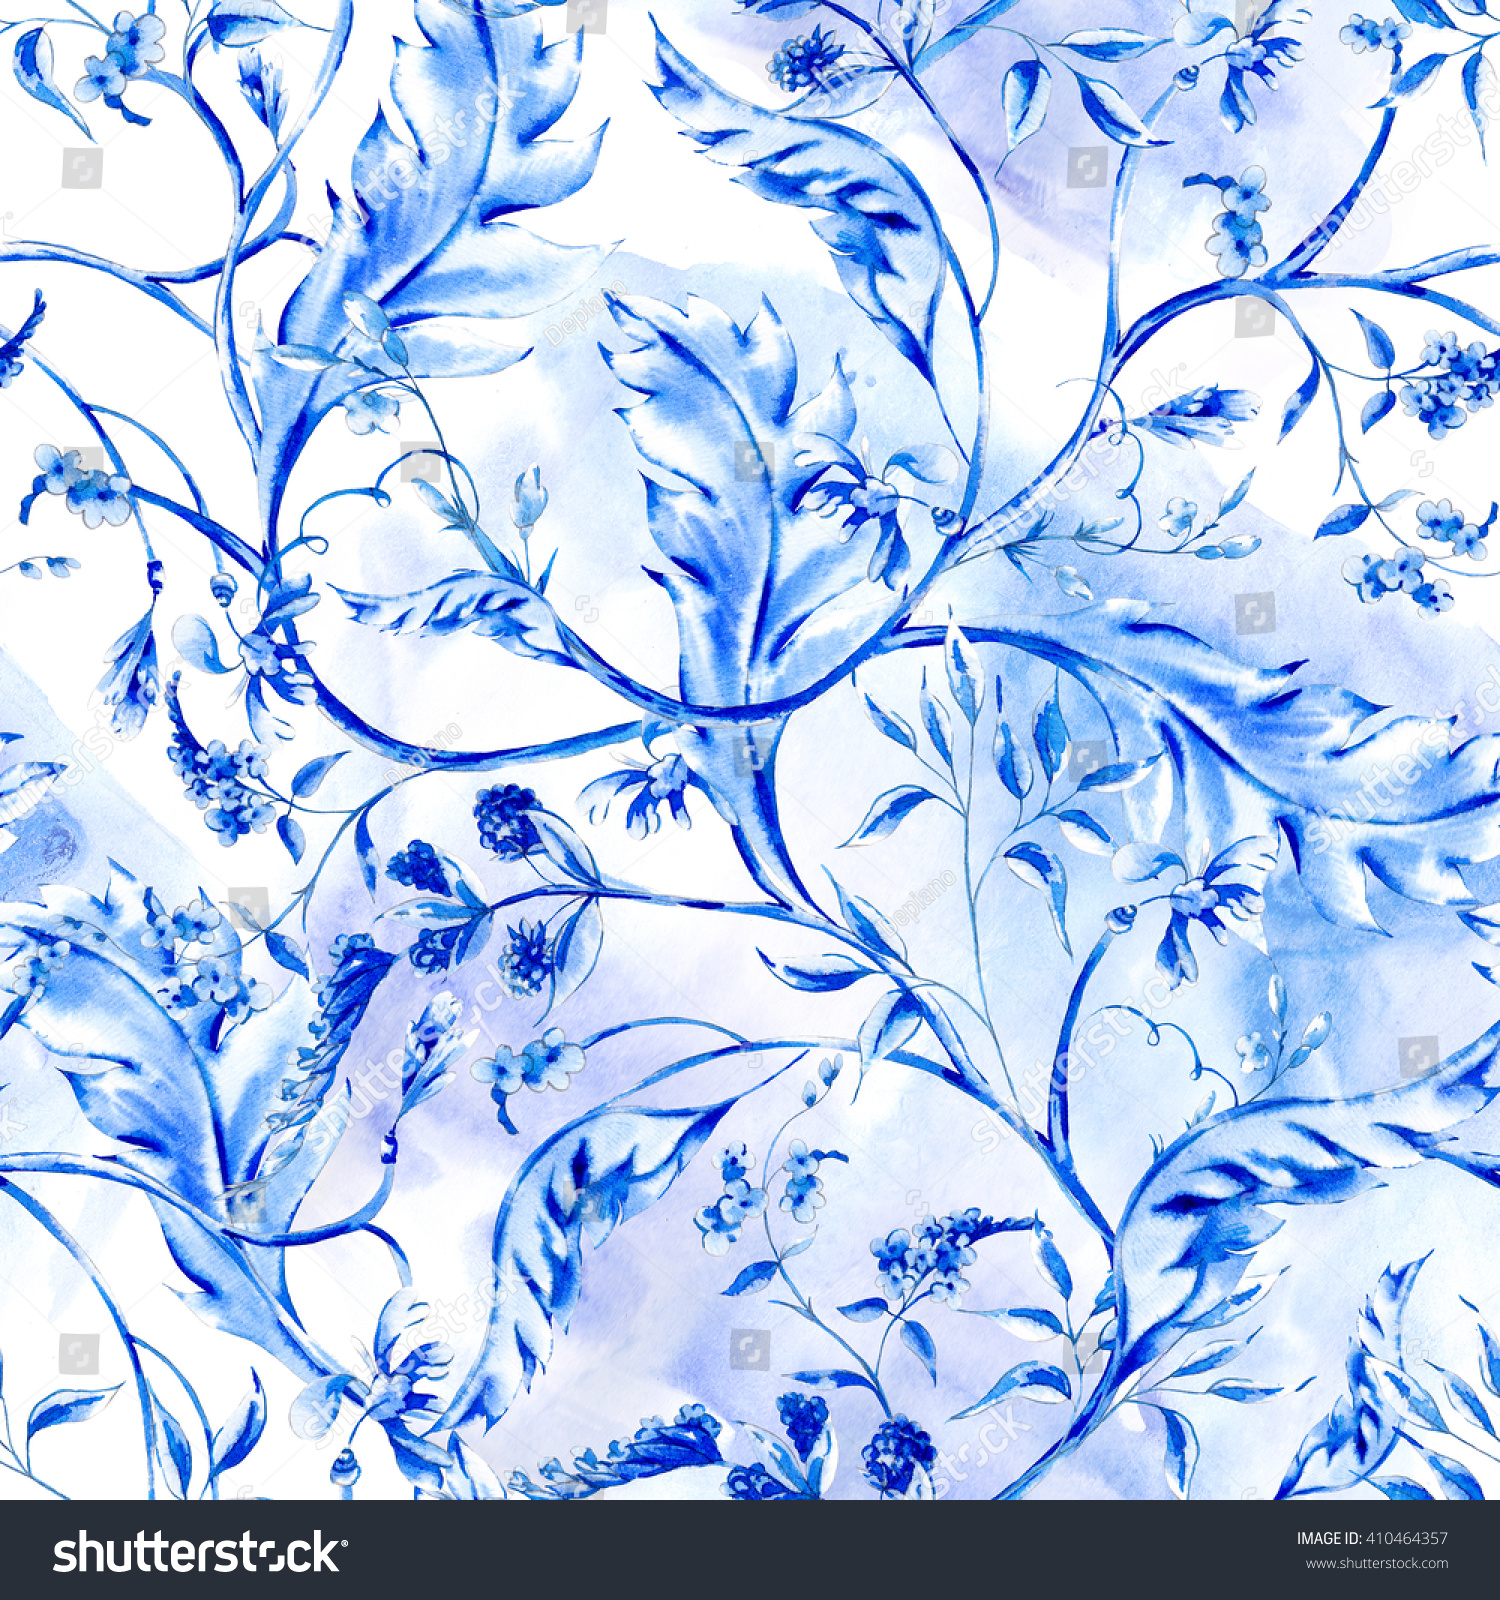 Blue watercolor flower vintage seamless pattern with branches and leaves natural flower wallpaper floral decoration curl illustration cobalt floral pattern